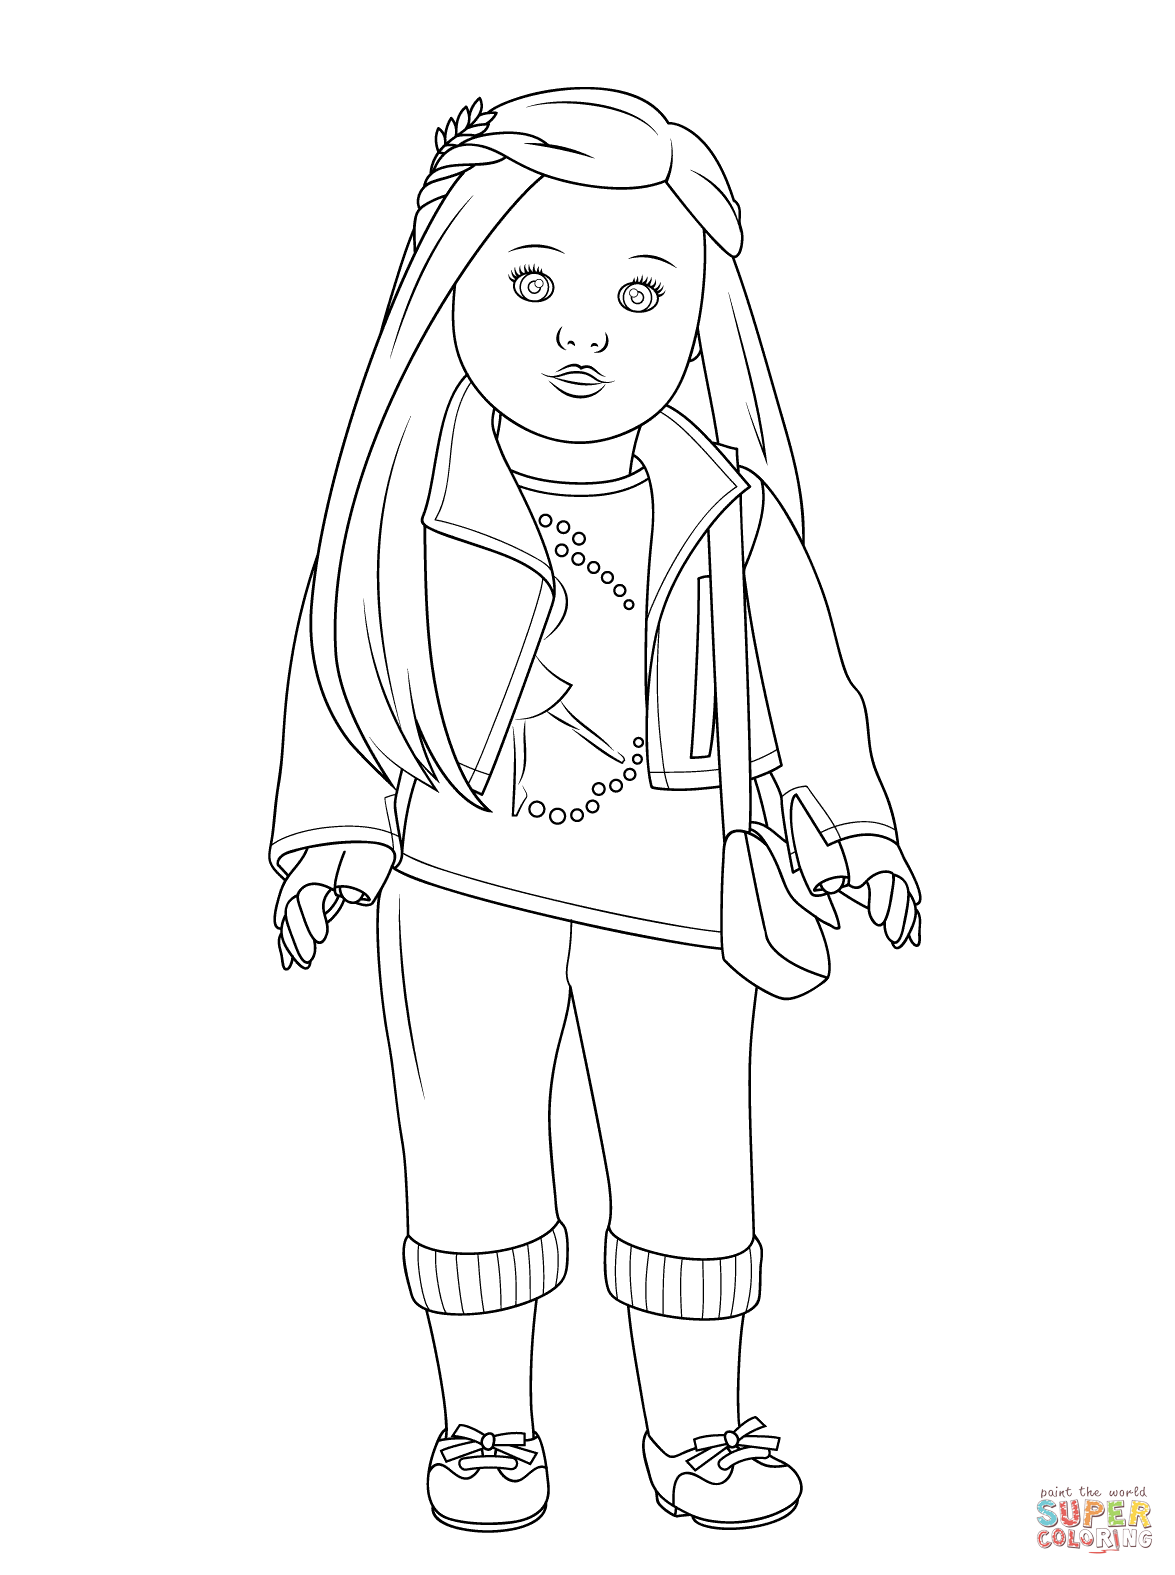 girl colering pages american girl coloring pages beforever small dolls in a colering pages girl